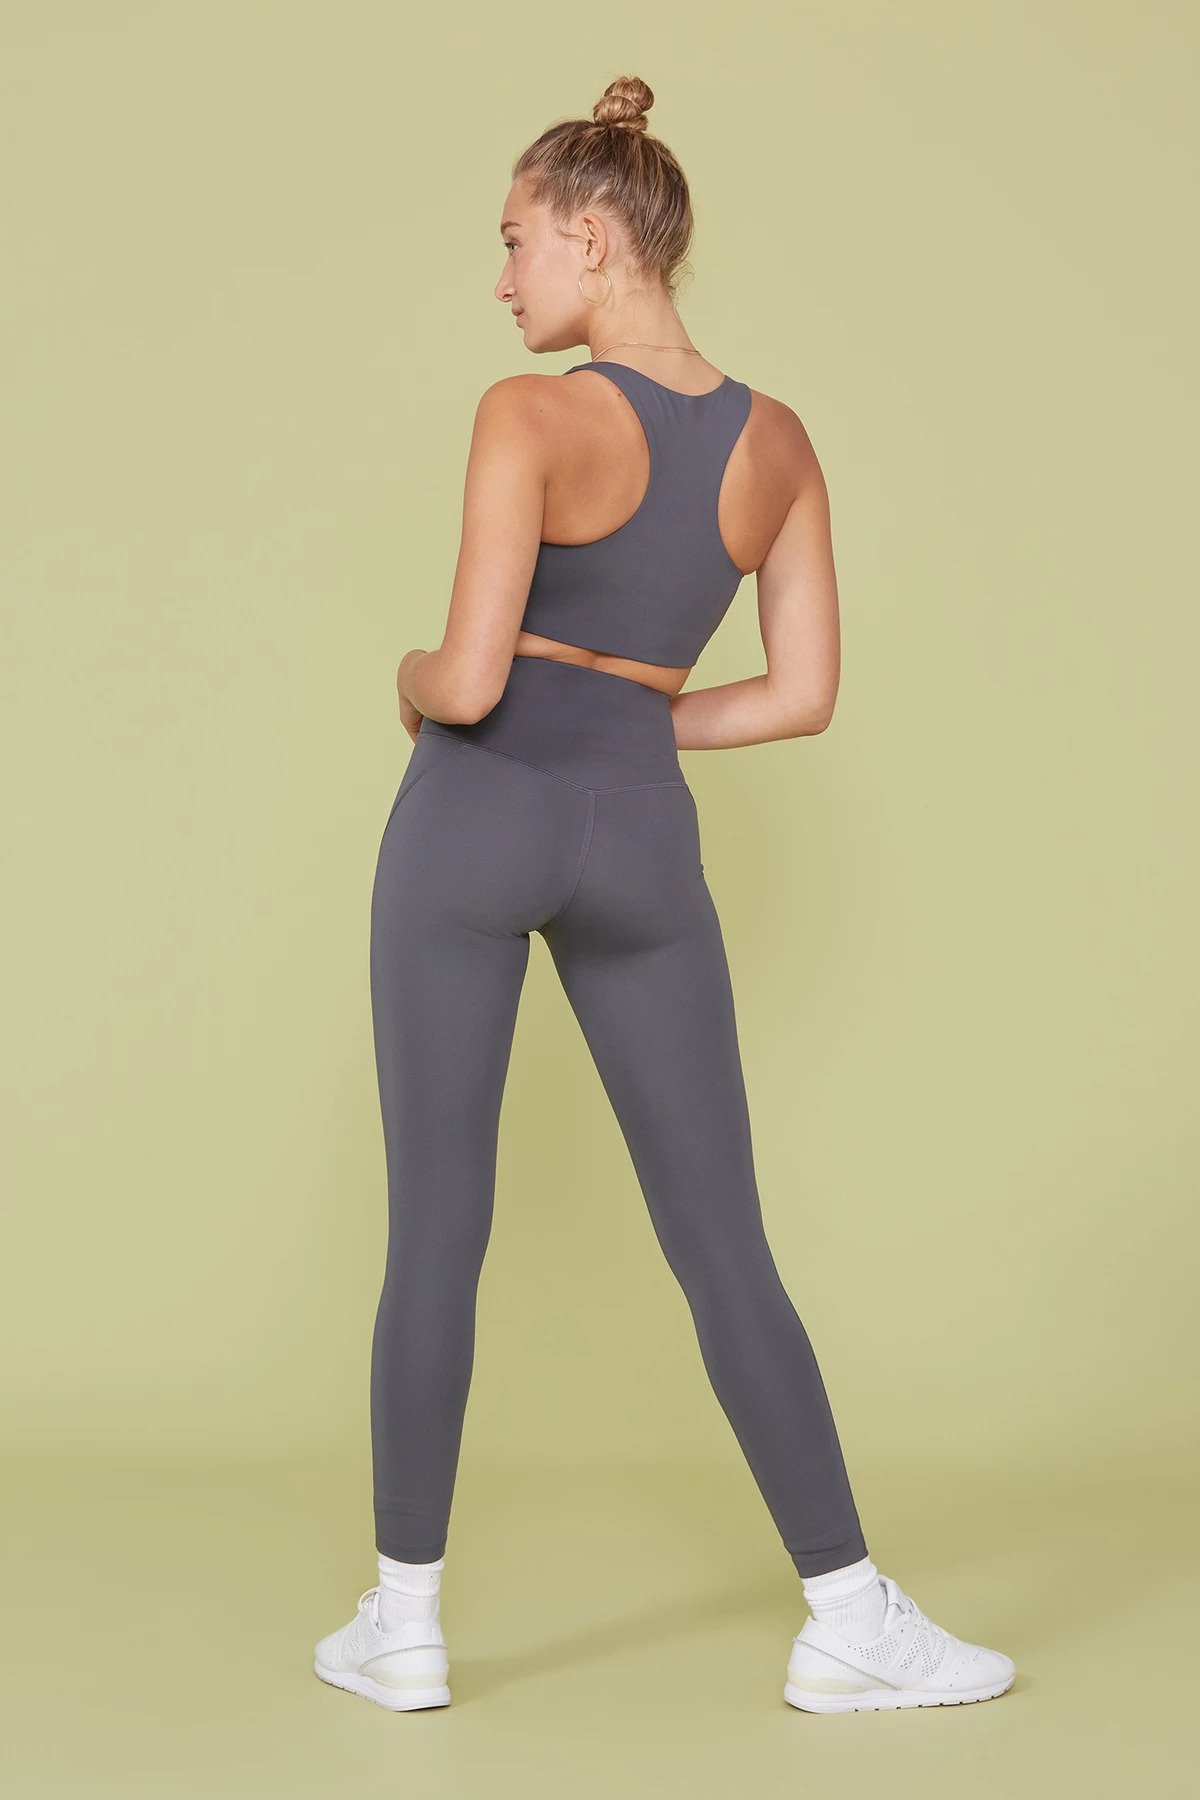 compressive high rise leggings in smoke, sustainable leggings from Girlfriend